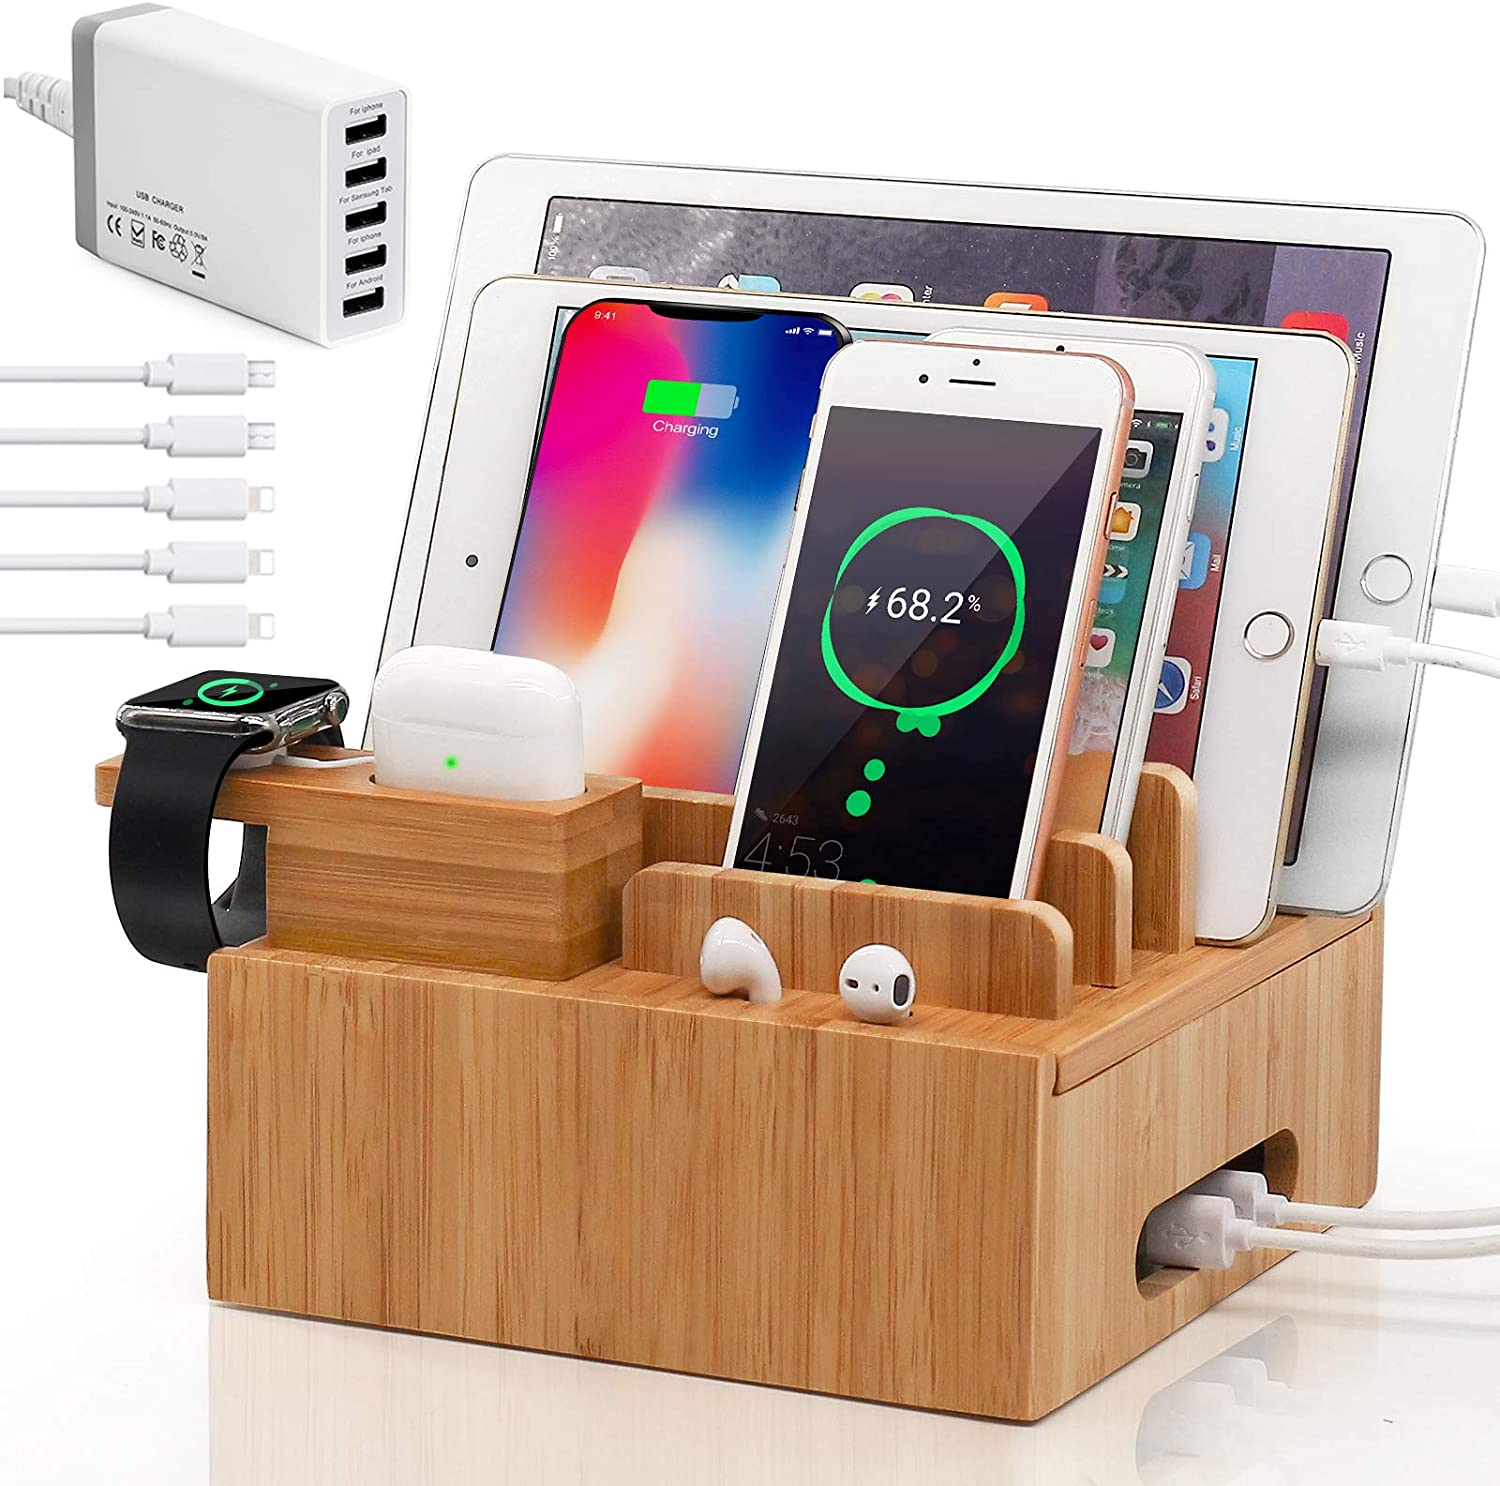 Pezin & Hulin Bamboo Charging Station for Multiple Devices (Included 5 Port USB Charger, 5 Pack Charge & Sync Cable, with AirPod & iWatch Stand), Electronic Device Organizer for Cell Phone, Tablet